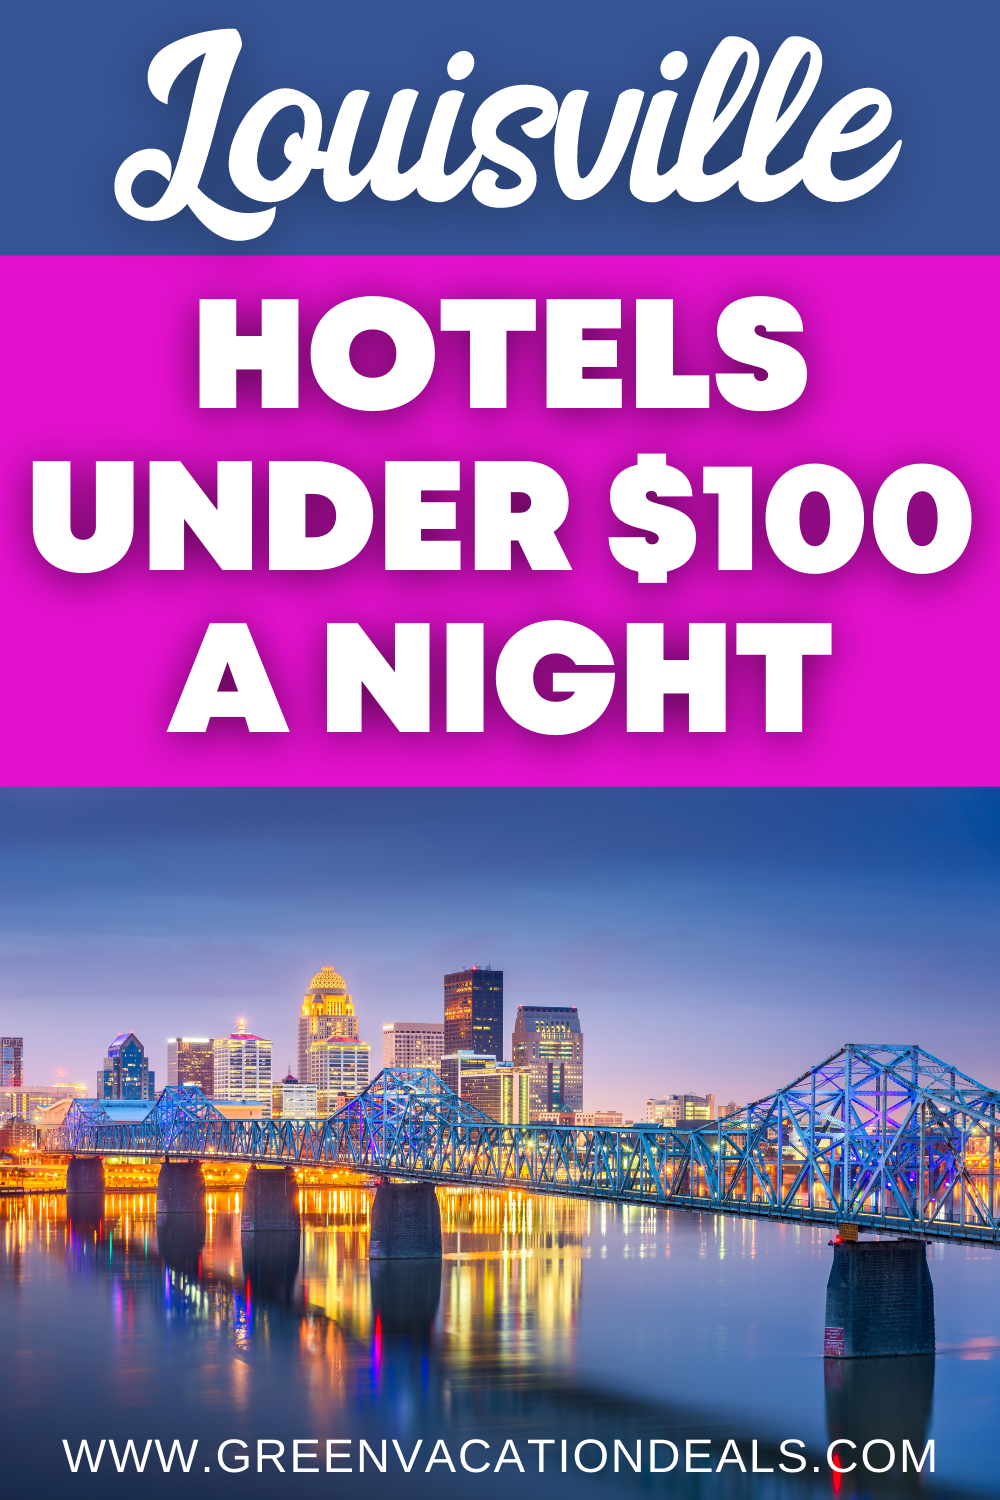 Cheap Lousiville, Kentucky nightly rates at Marriott, Holiday Inn, Hyatt, Hilton, Embassy Suites,Best Western in Downtown, Airport, Jeffersonville... Great travel hacks to save on your hotel stay for your next Lousiville trip. #Louisville #Kentucky #hoteldeals #hotelsale #traveldeals #travelsale #travelhacks #bourbon #KentuckyBourbon #citybreak #Southerntravel #Kentuckytravel #UStravel #USAtravel #traveltip